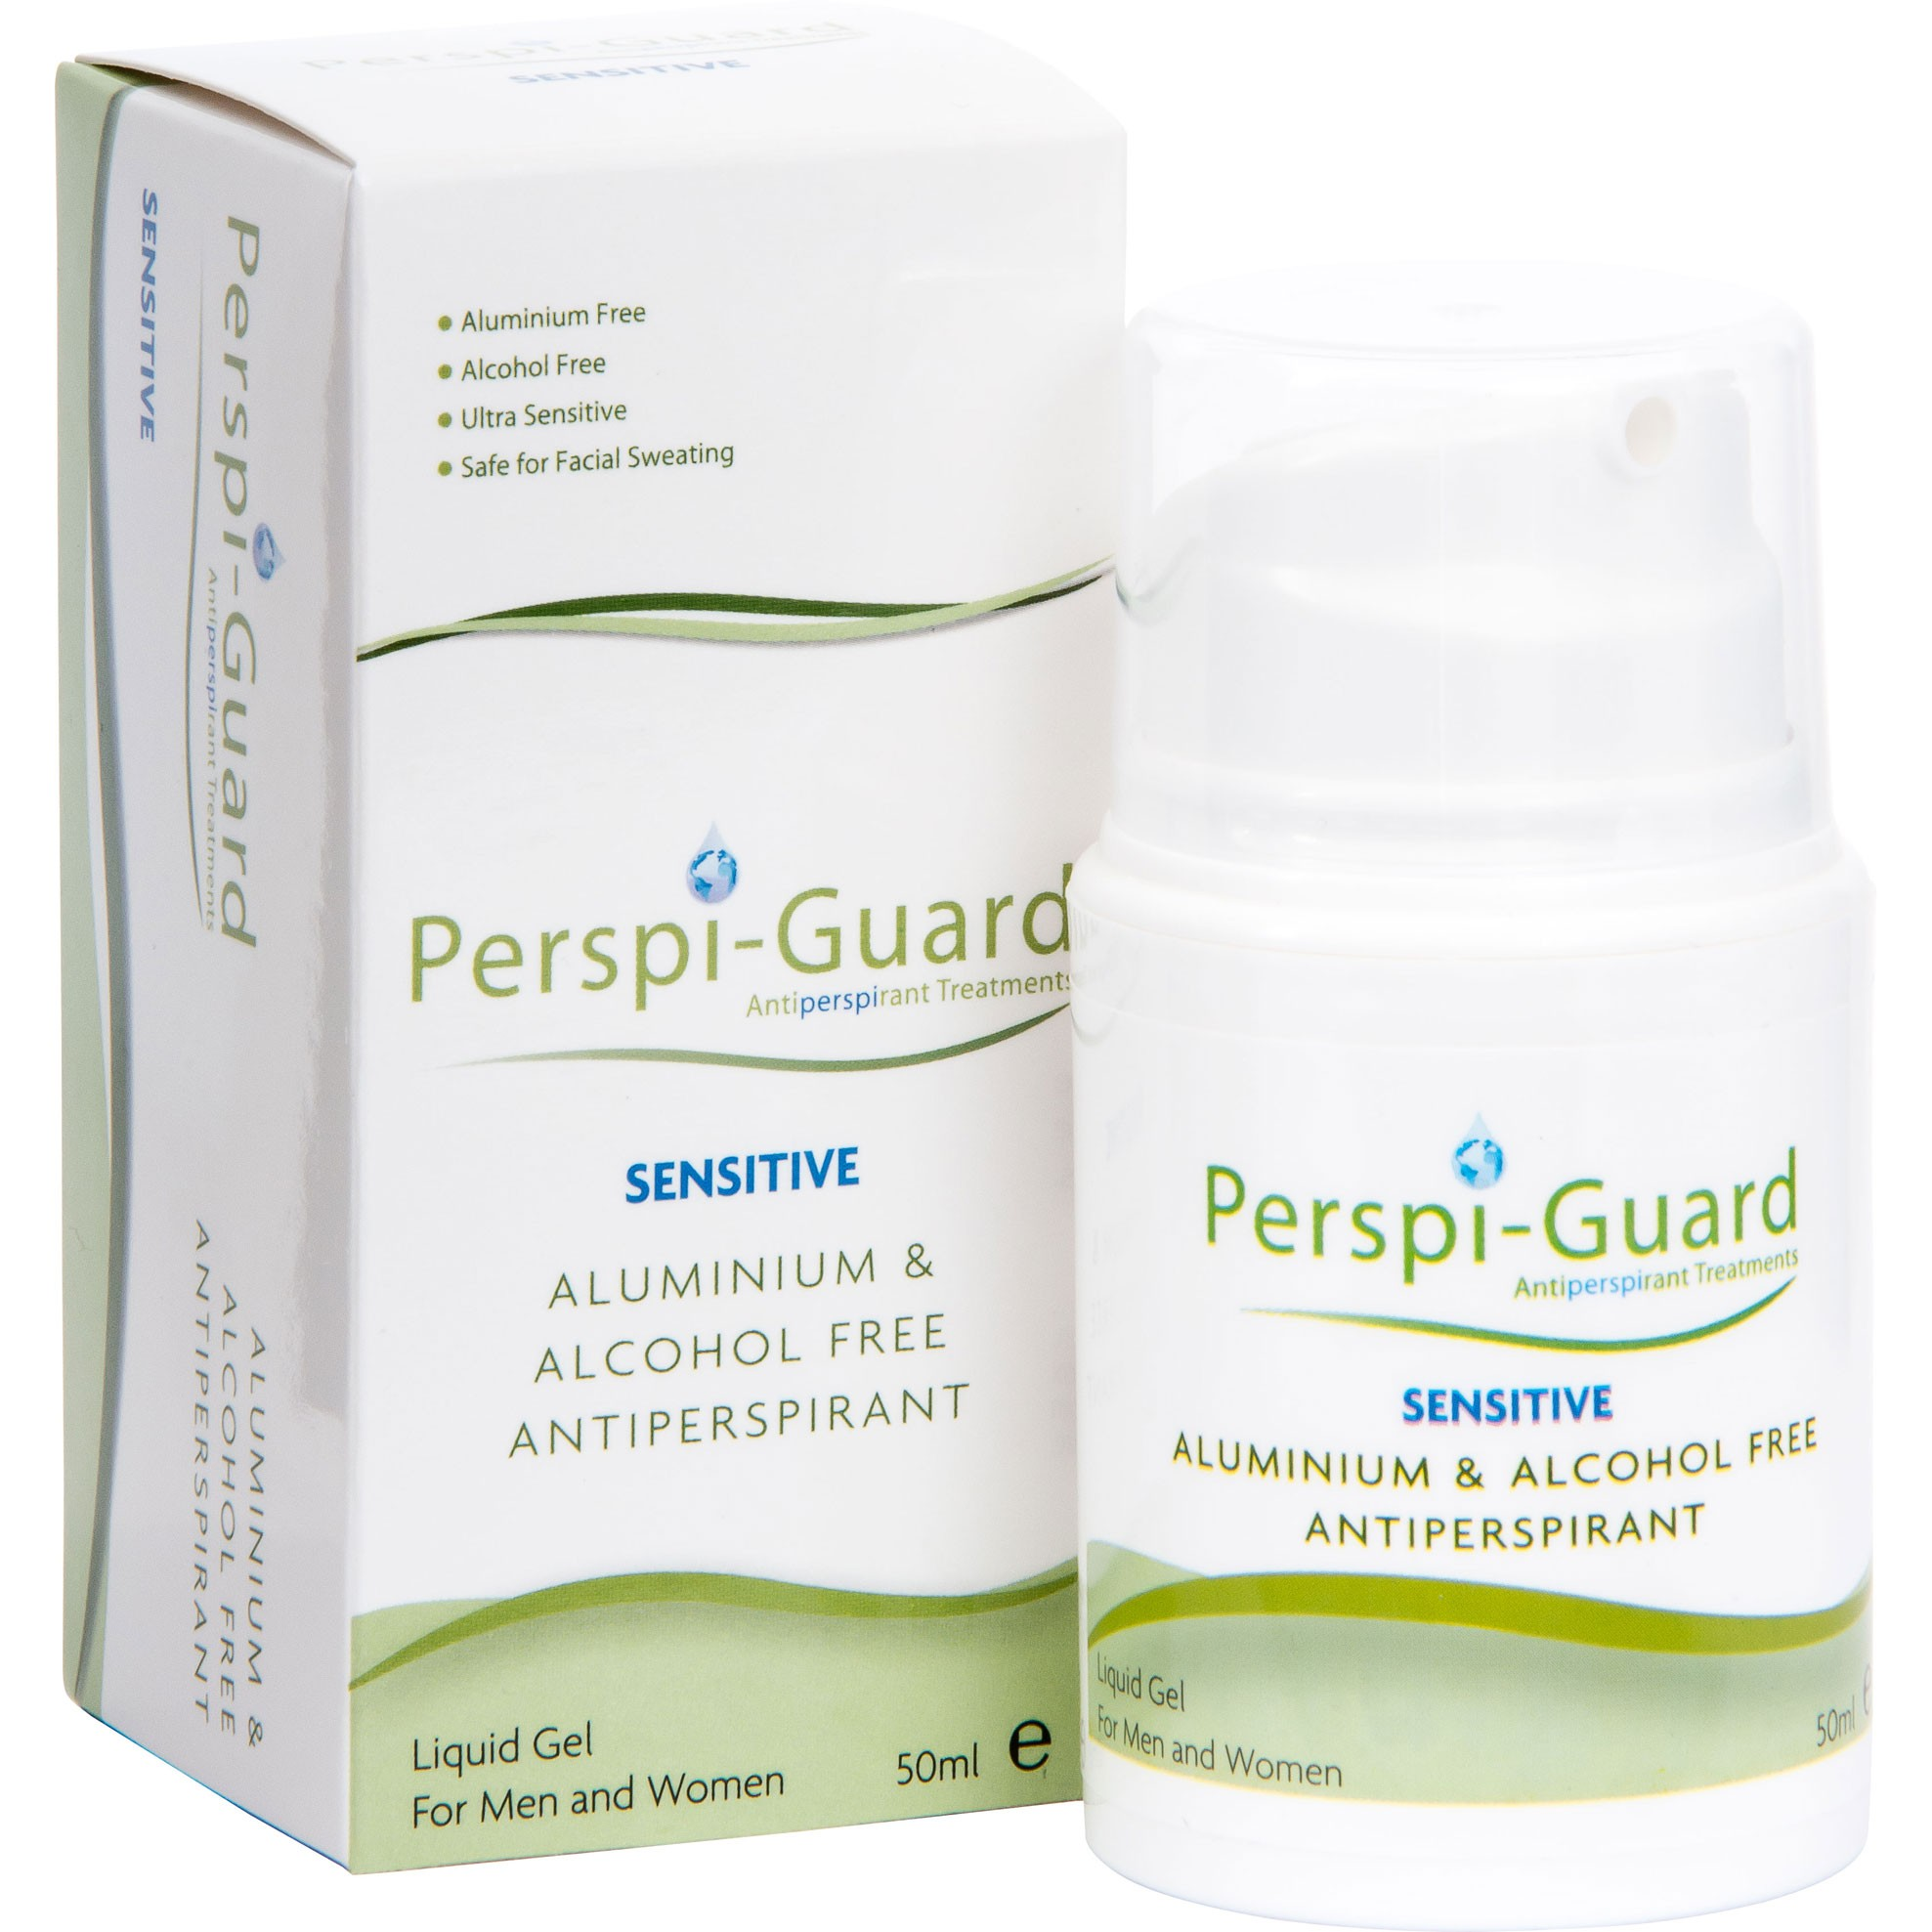 Perspi-Guard SENSITIVE antiperspirant 50 ml